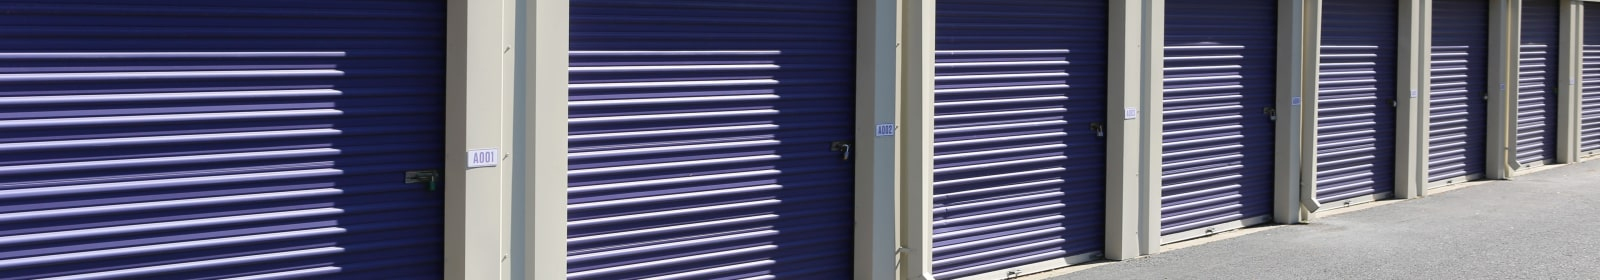 Self storage solutions in Rockledge, Florida